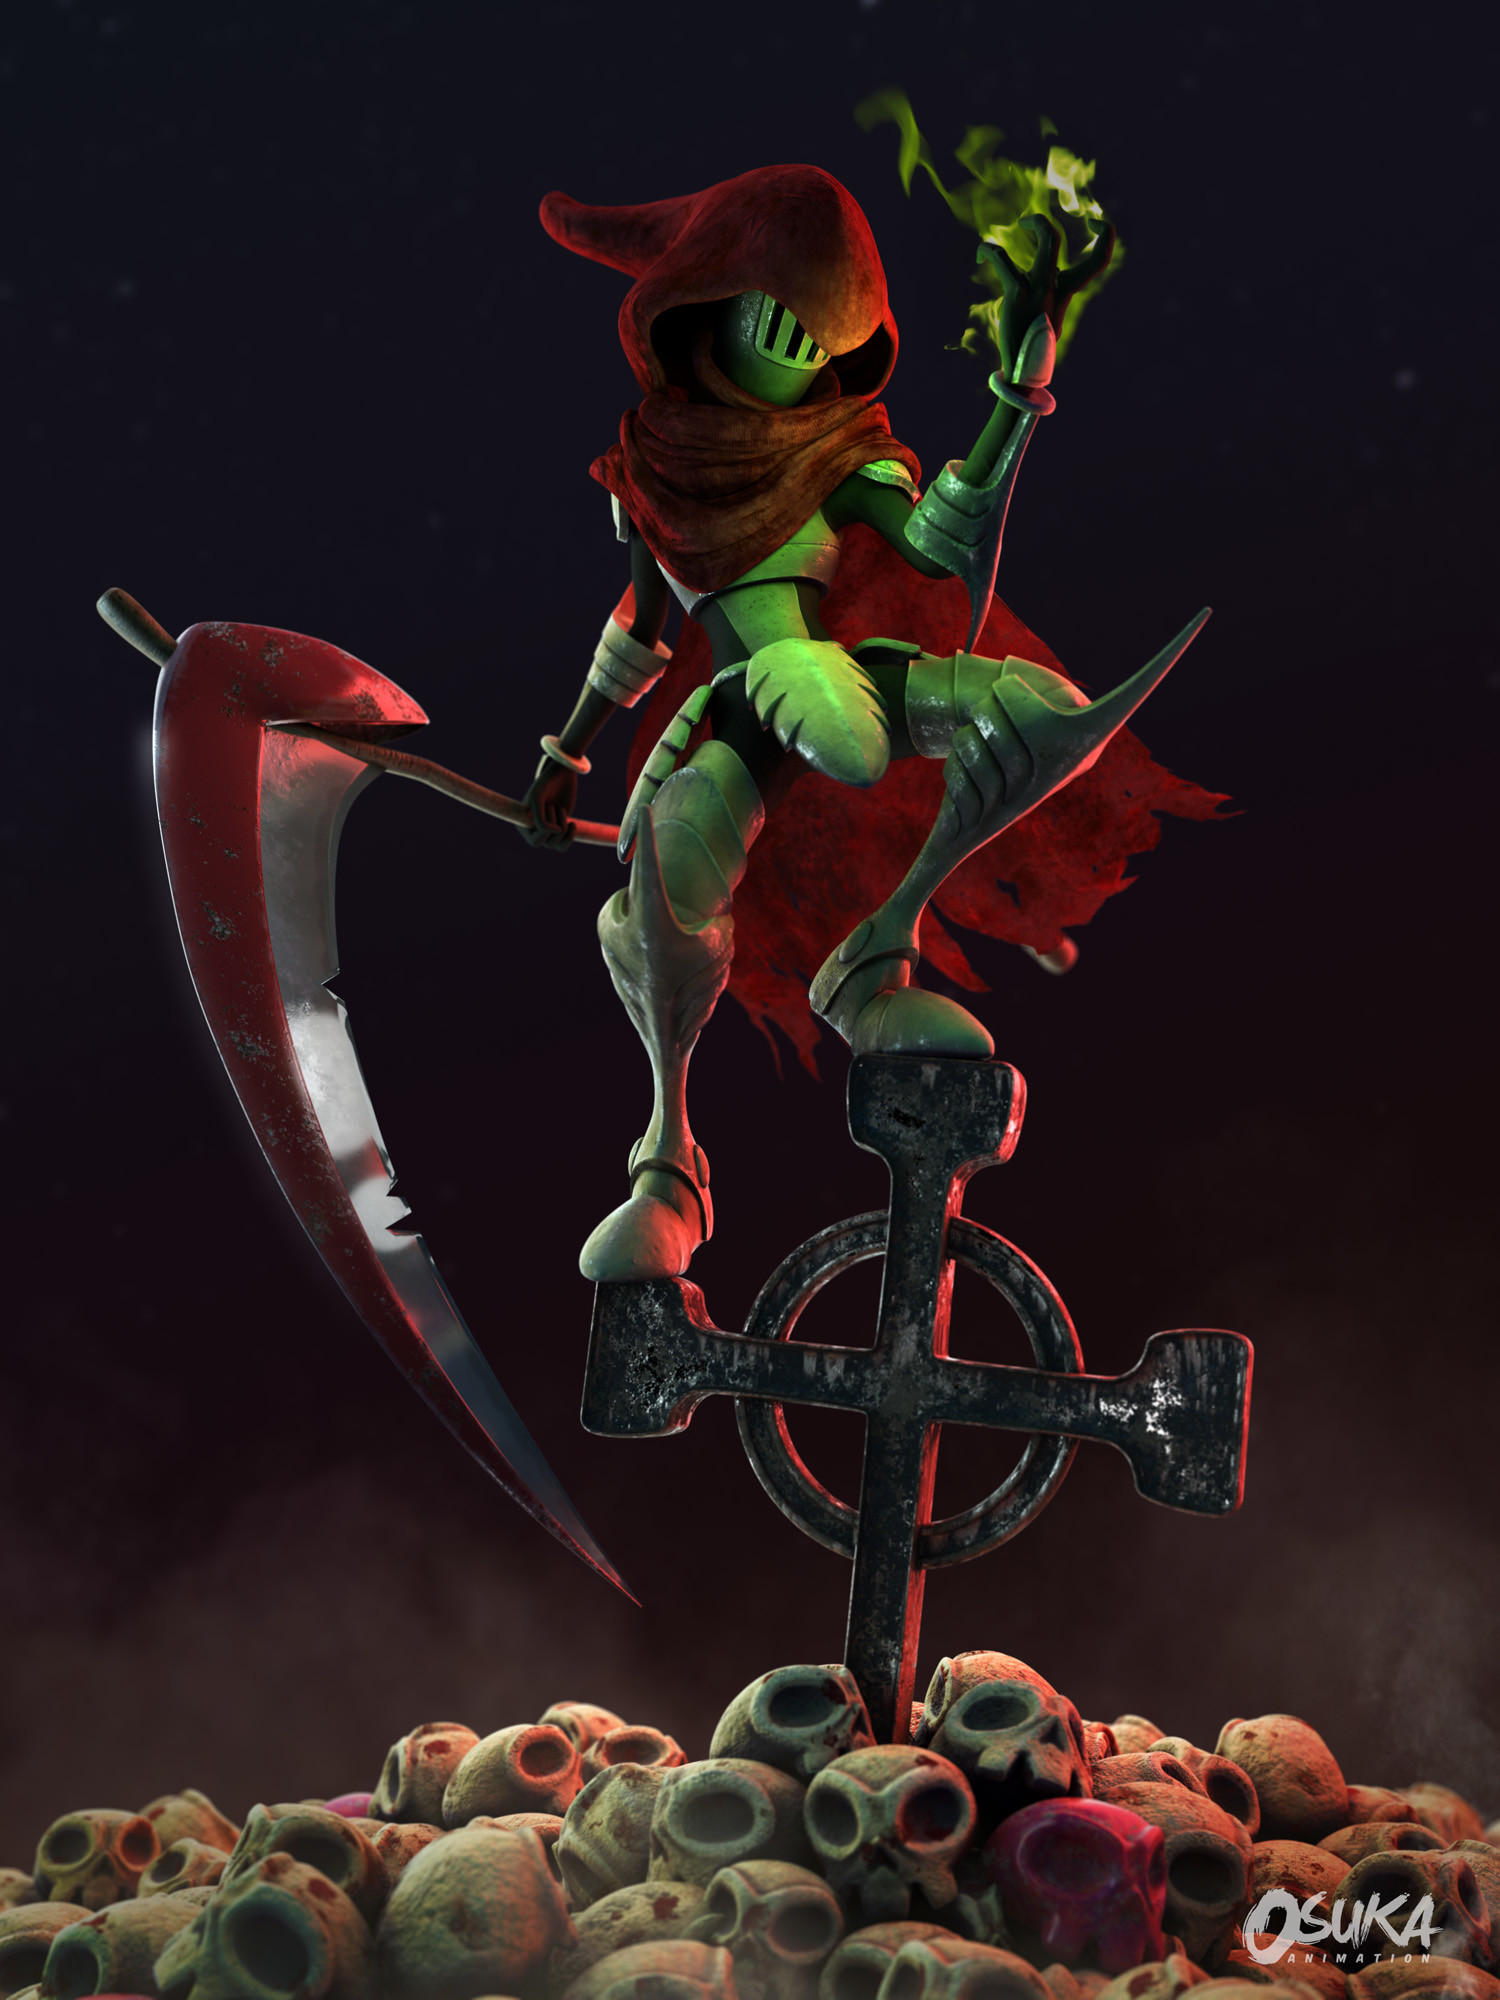 Oscar diaz c specter knight main